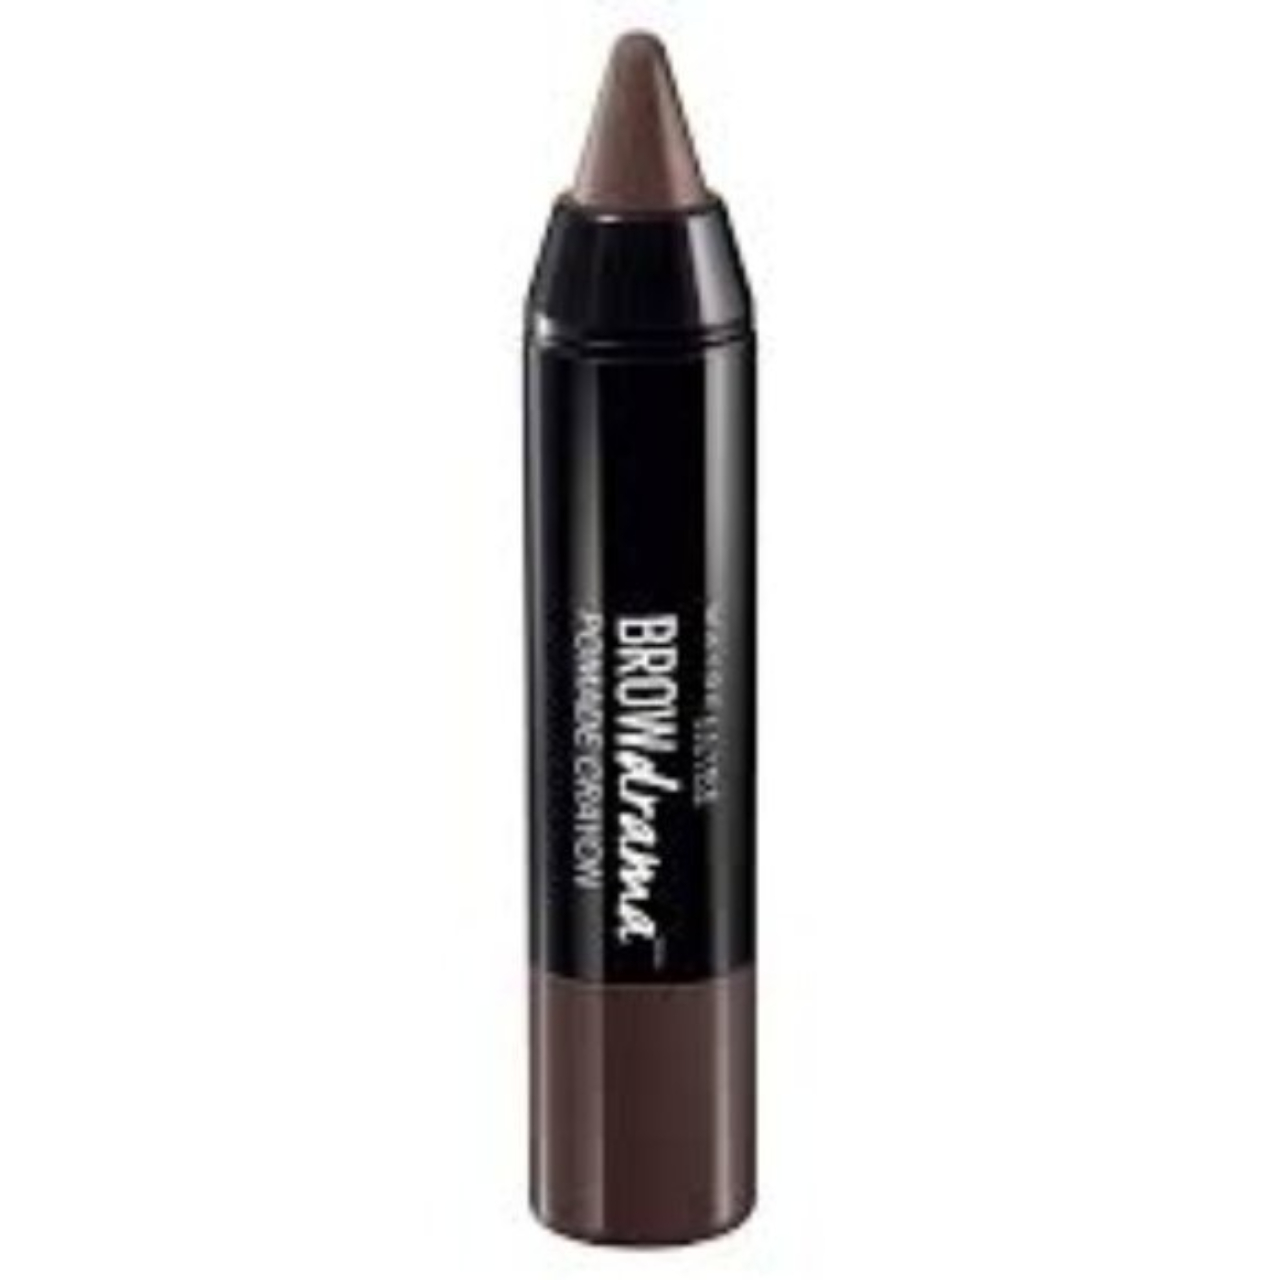 Product Image 1 - Maybelline Brow Drama Pomade Deep